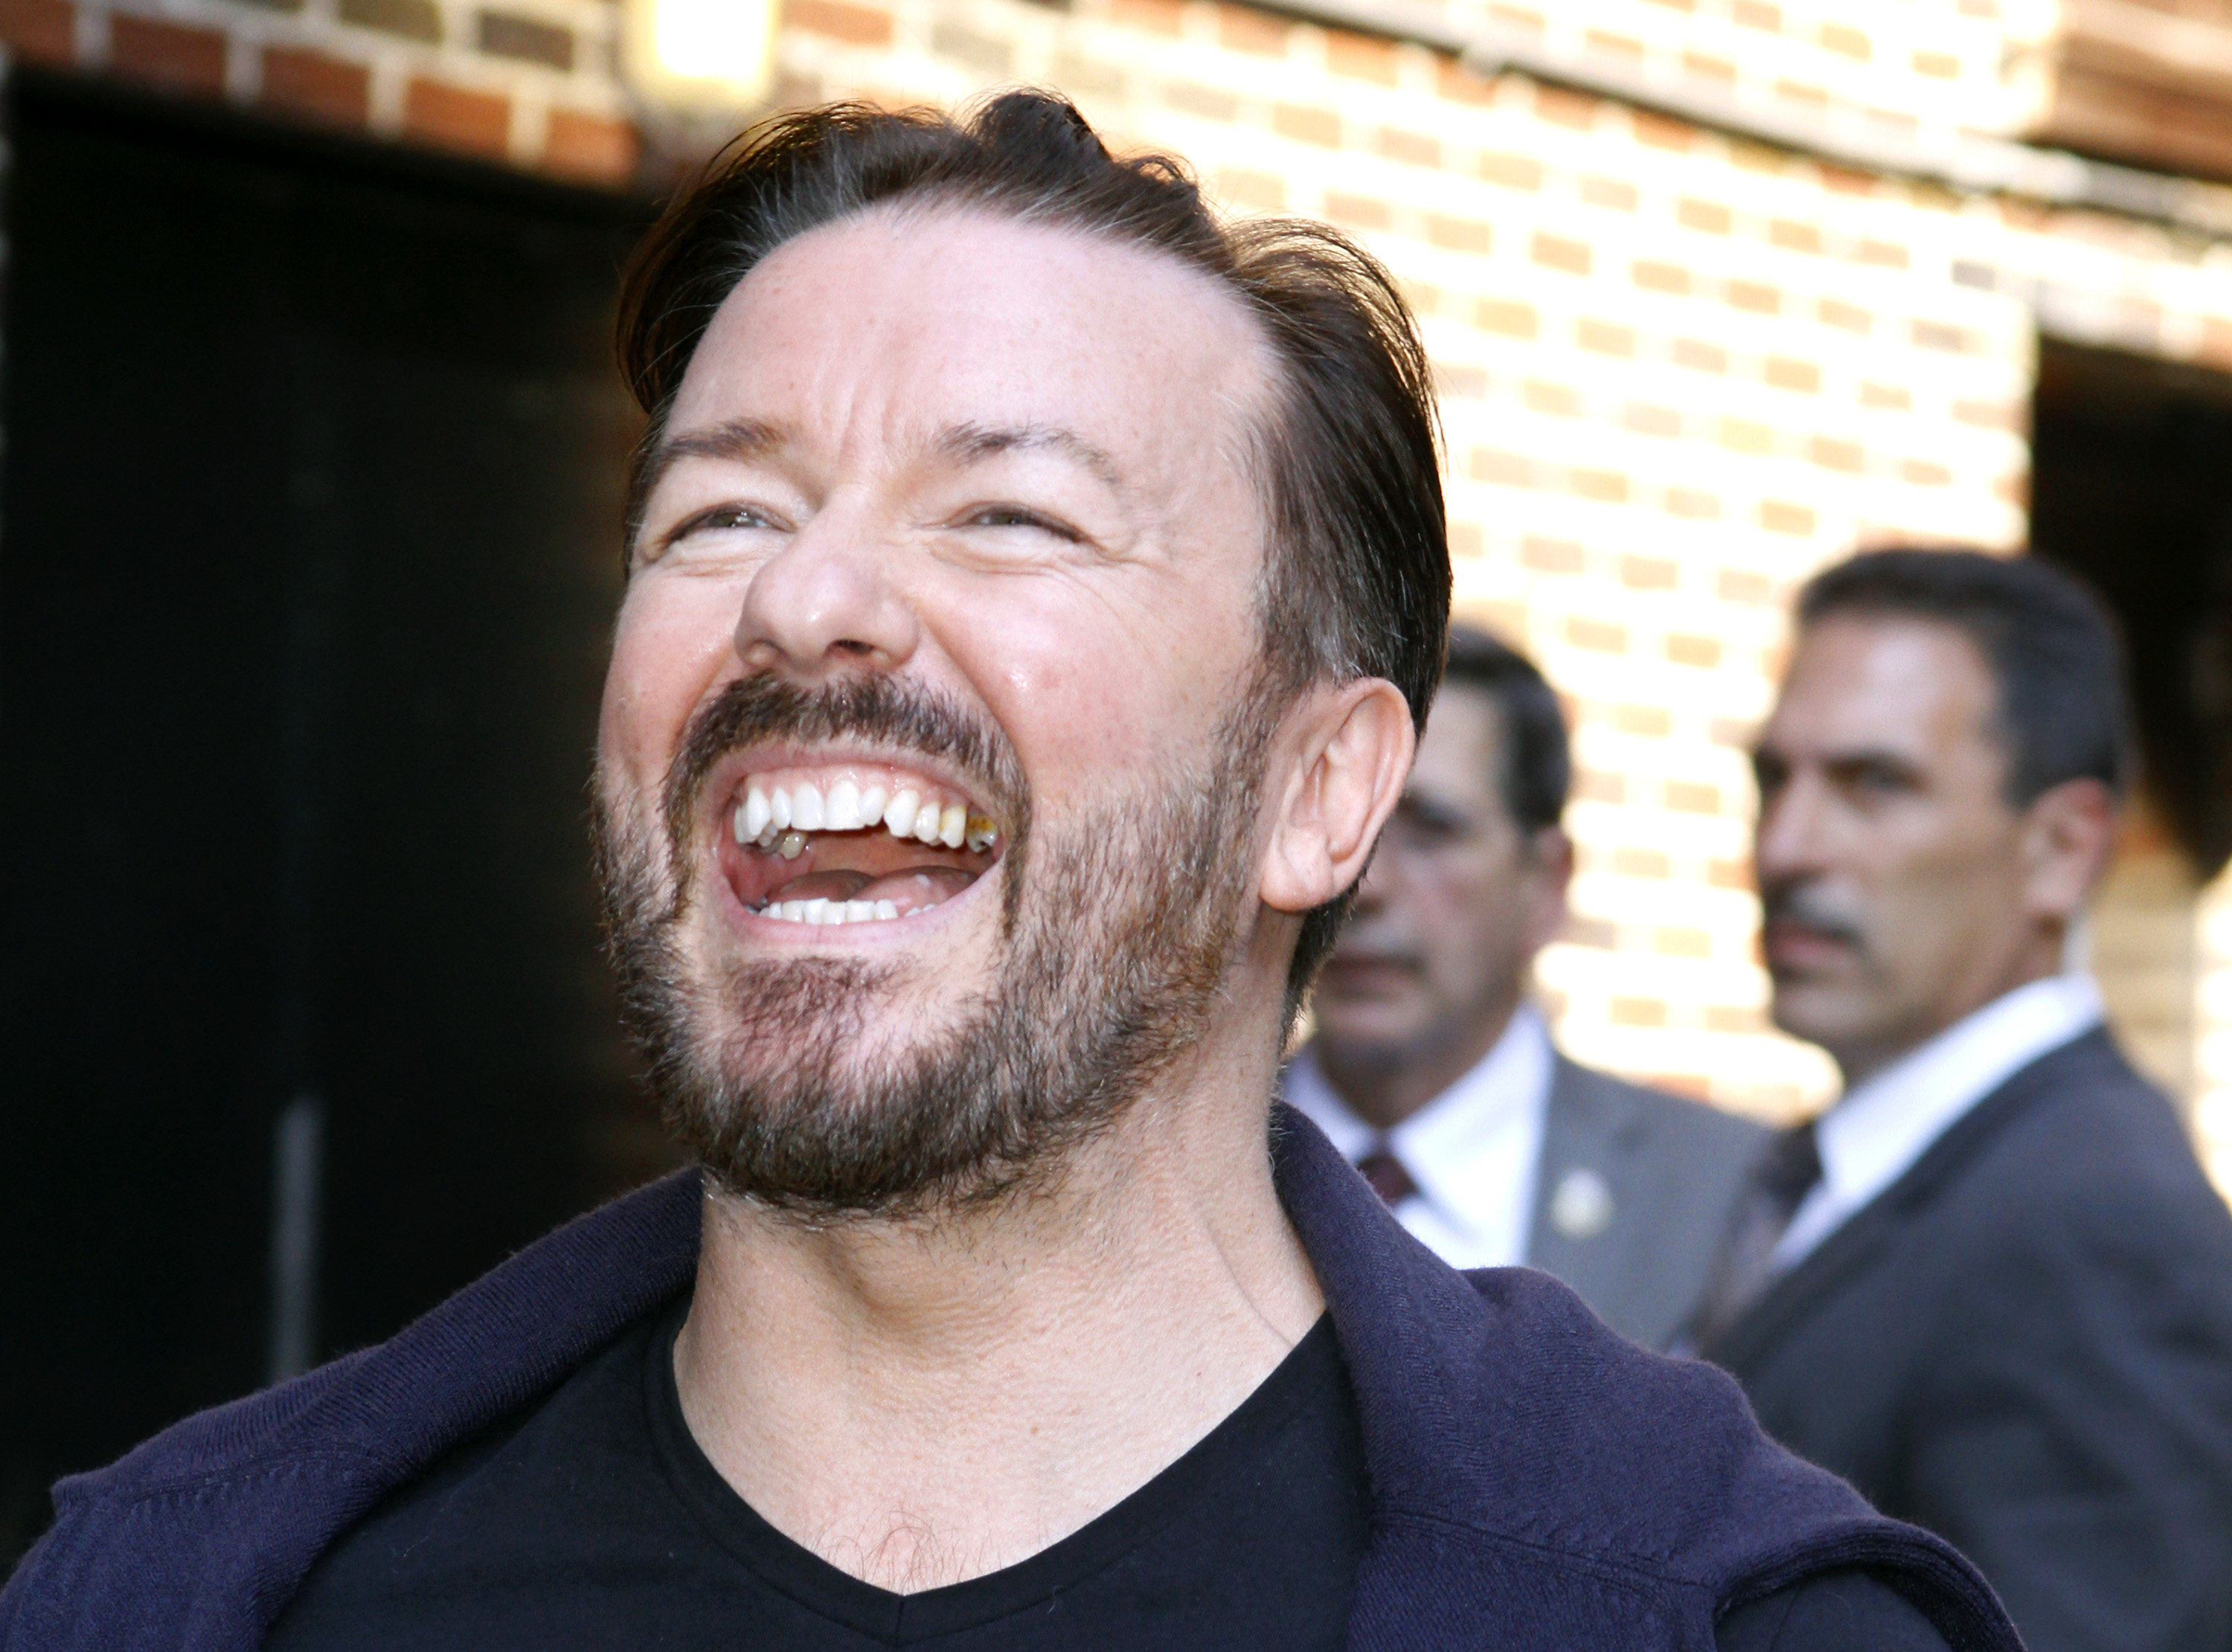 """NEW YORK, NY - AUGUST 02: Ricky Gervais leaves the  """"Late Show With David Letterman"""" at the Ed Sullivan Theater on August 2, 2011 in New York City. (Photo by Donna Ward/Getty Images)"""